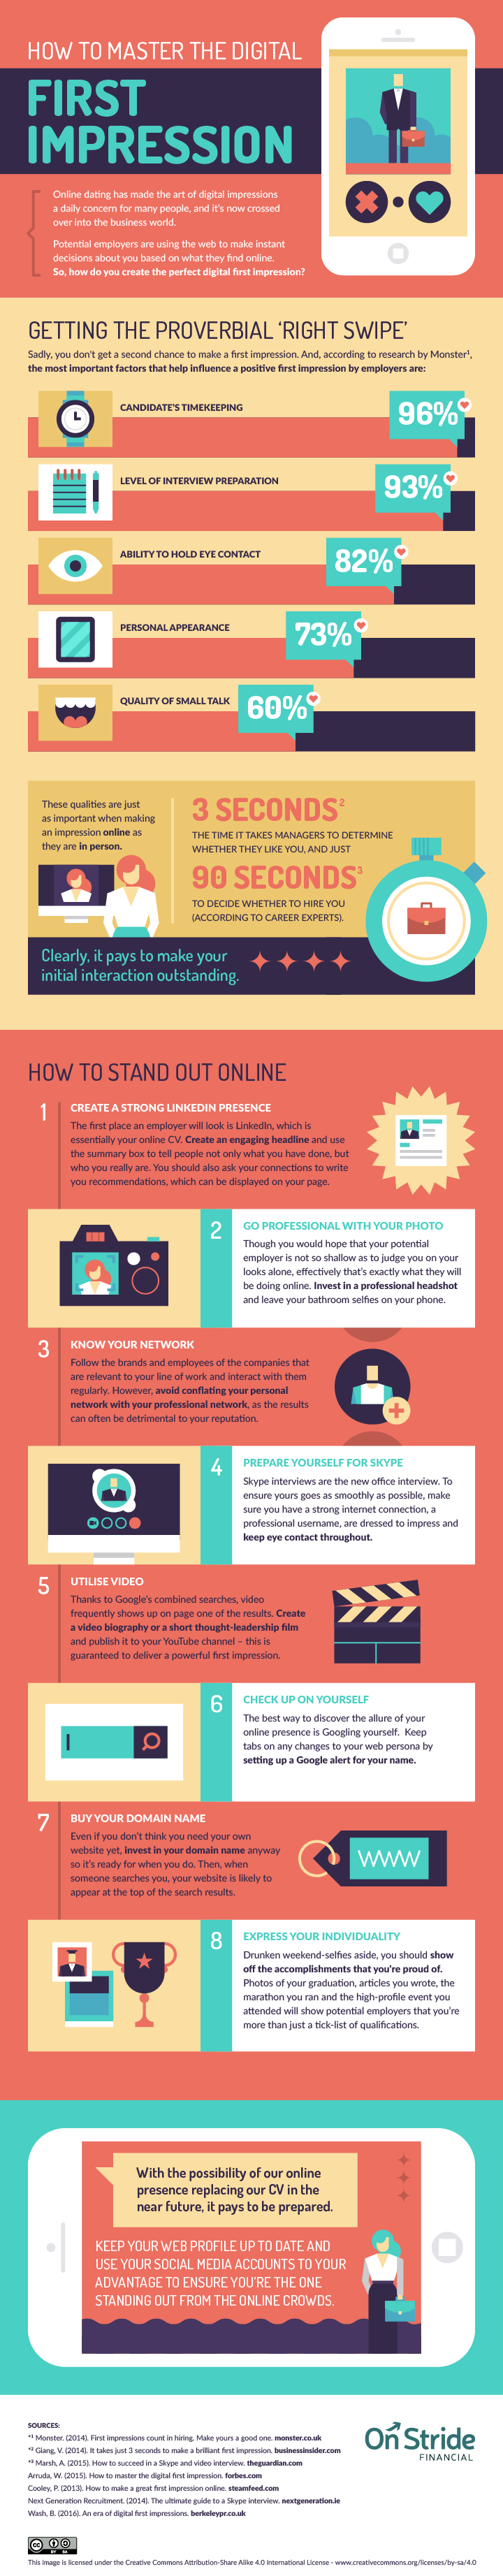 How to Master the Digital First Impression #Infographic